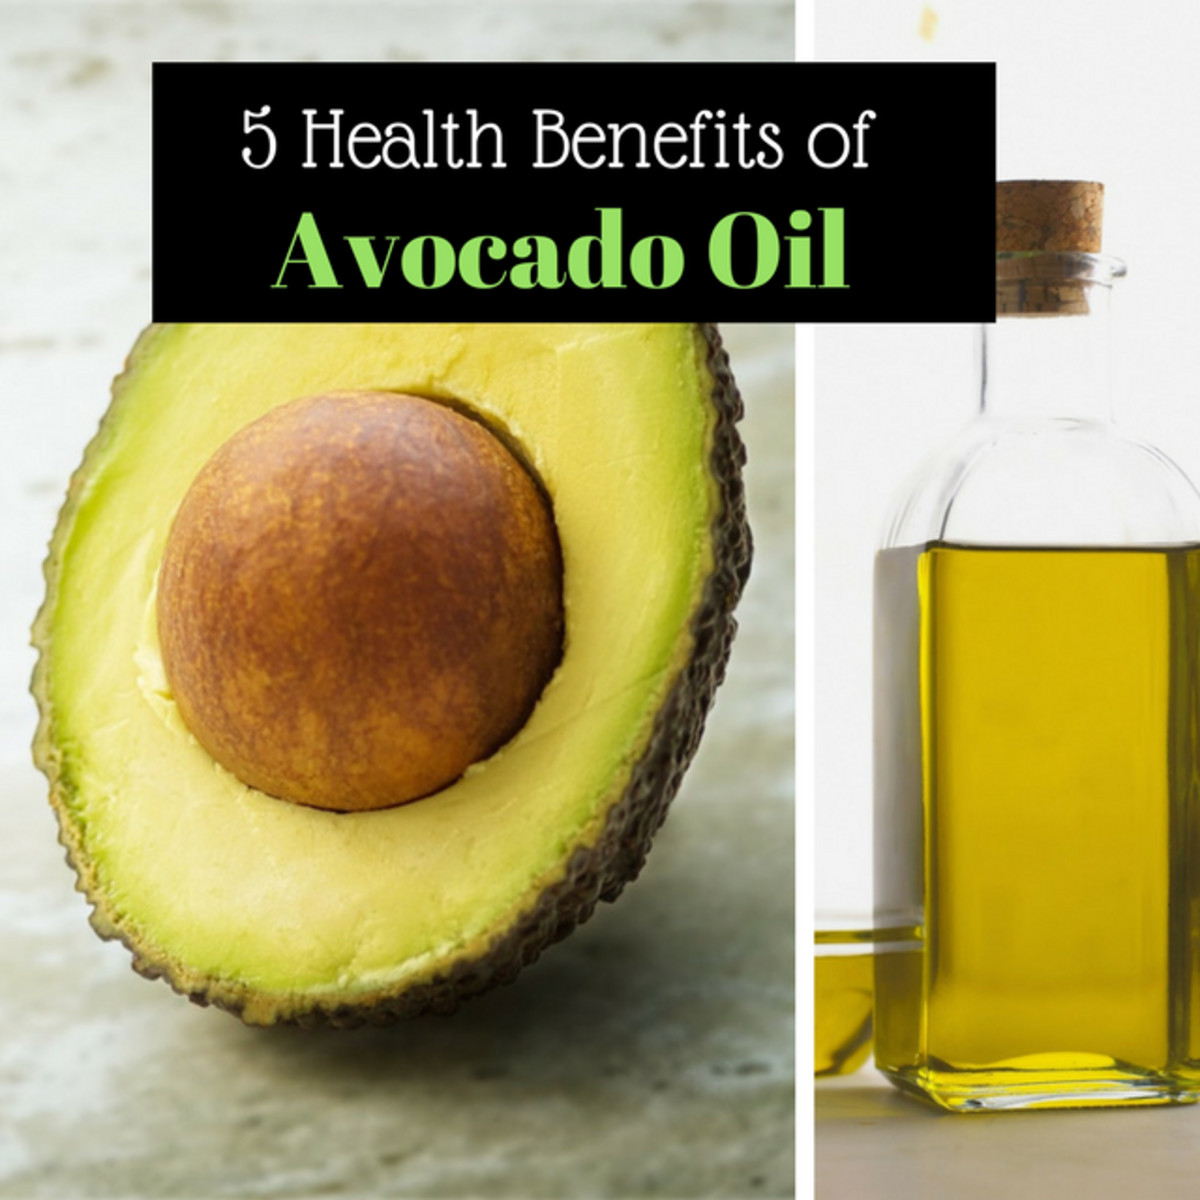 5 Health Benefits of Avocado Oil